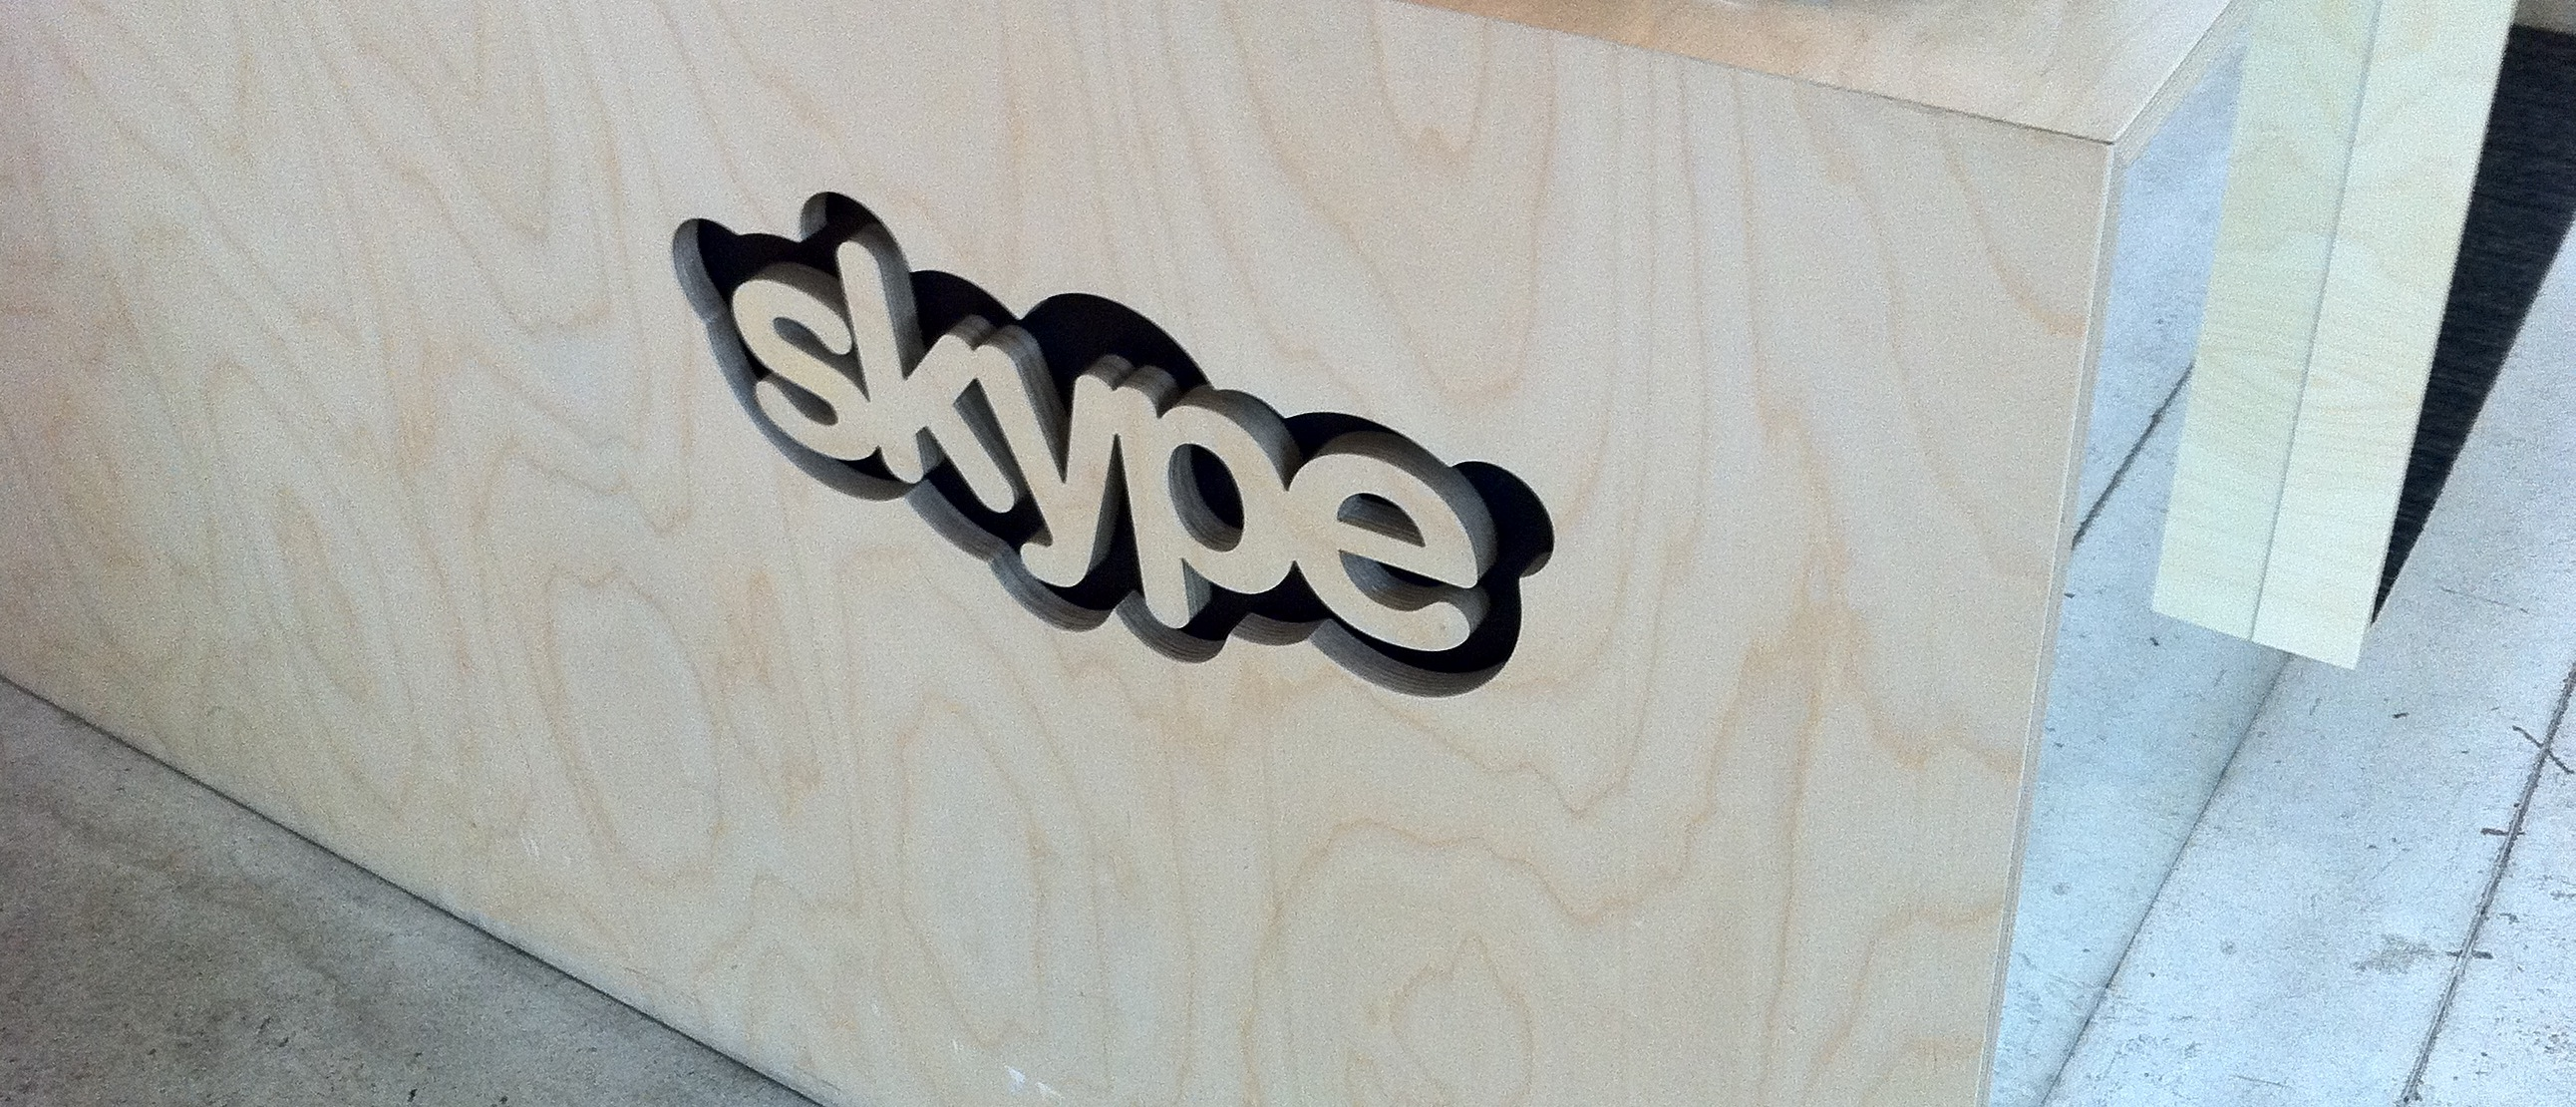 Roam no more: Skype brings its prepaid cards to 1,400 UK stores